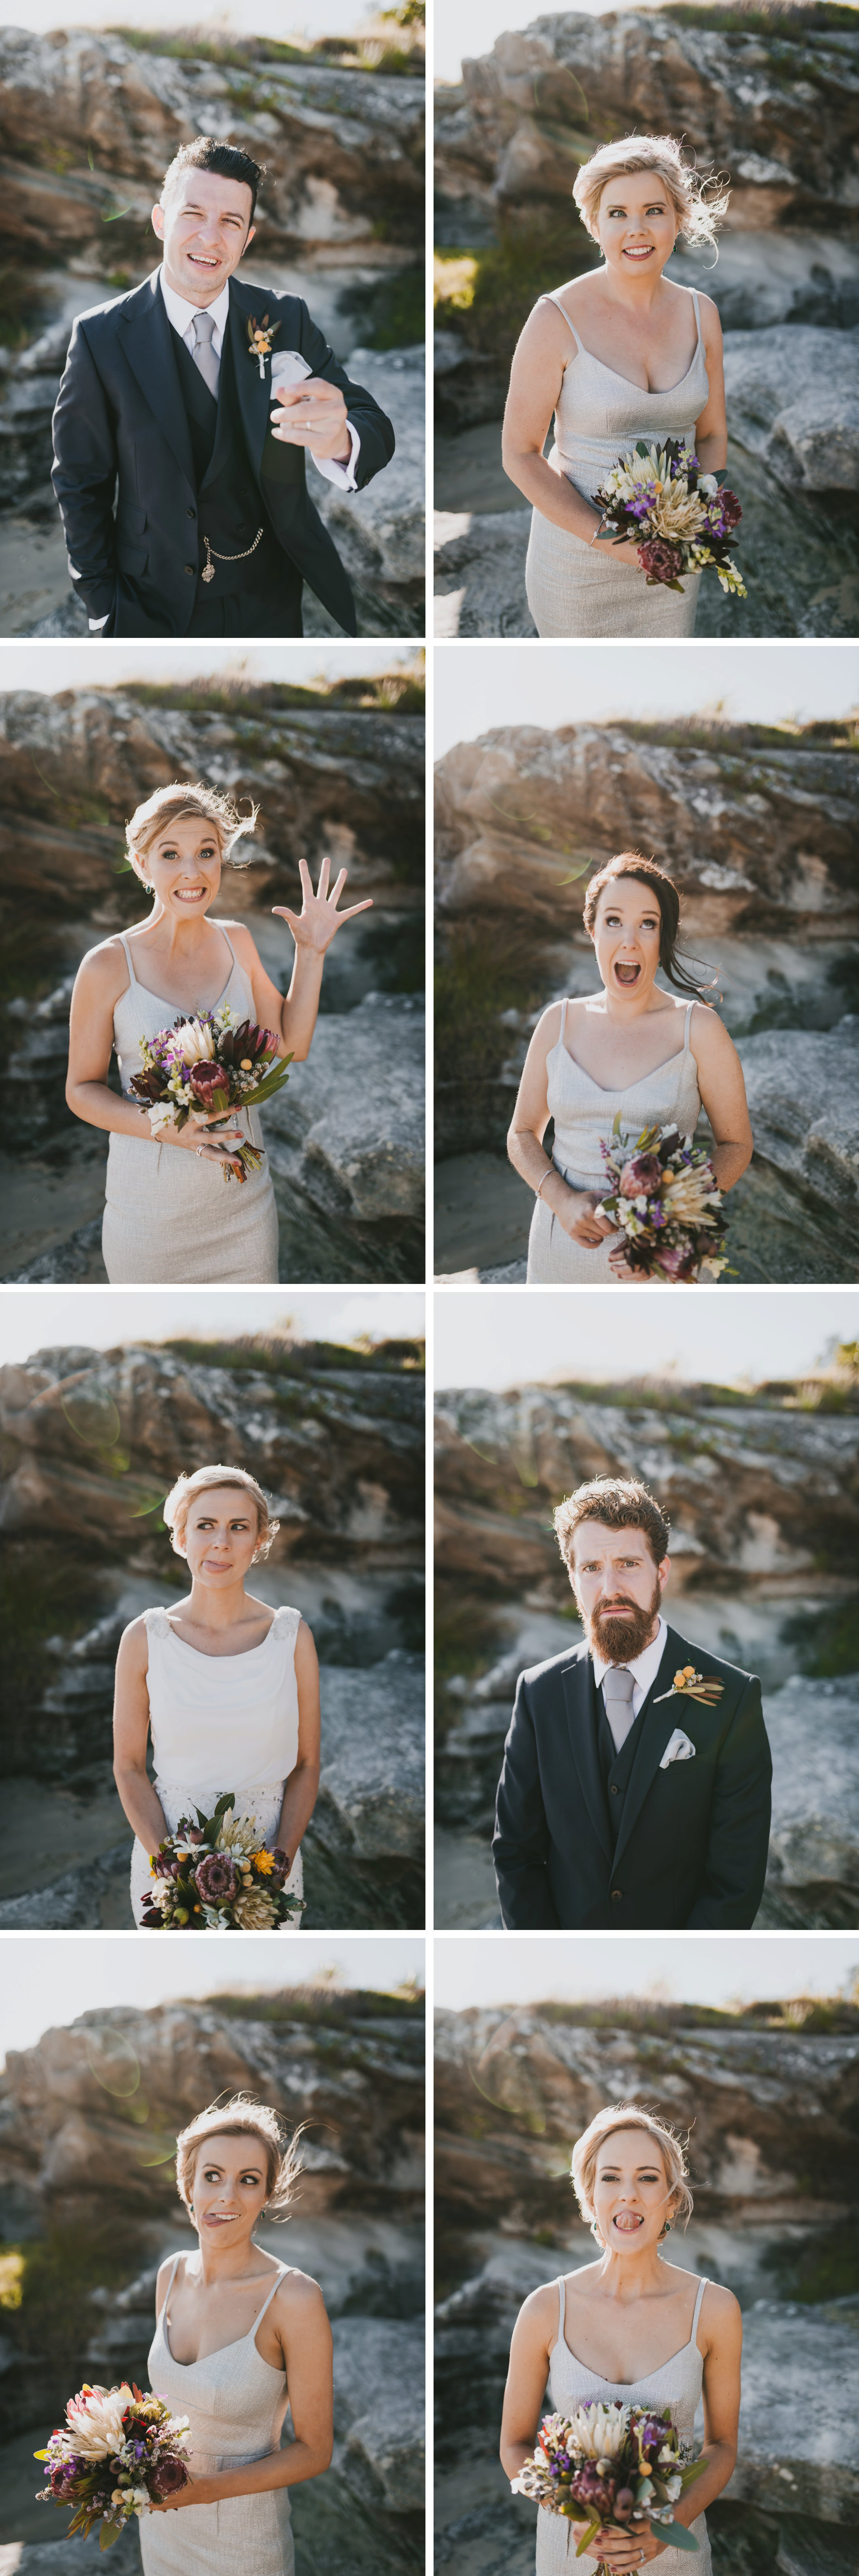 Watons bay Vaucluse House Sydney Wedding-10093